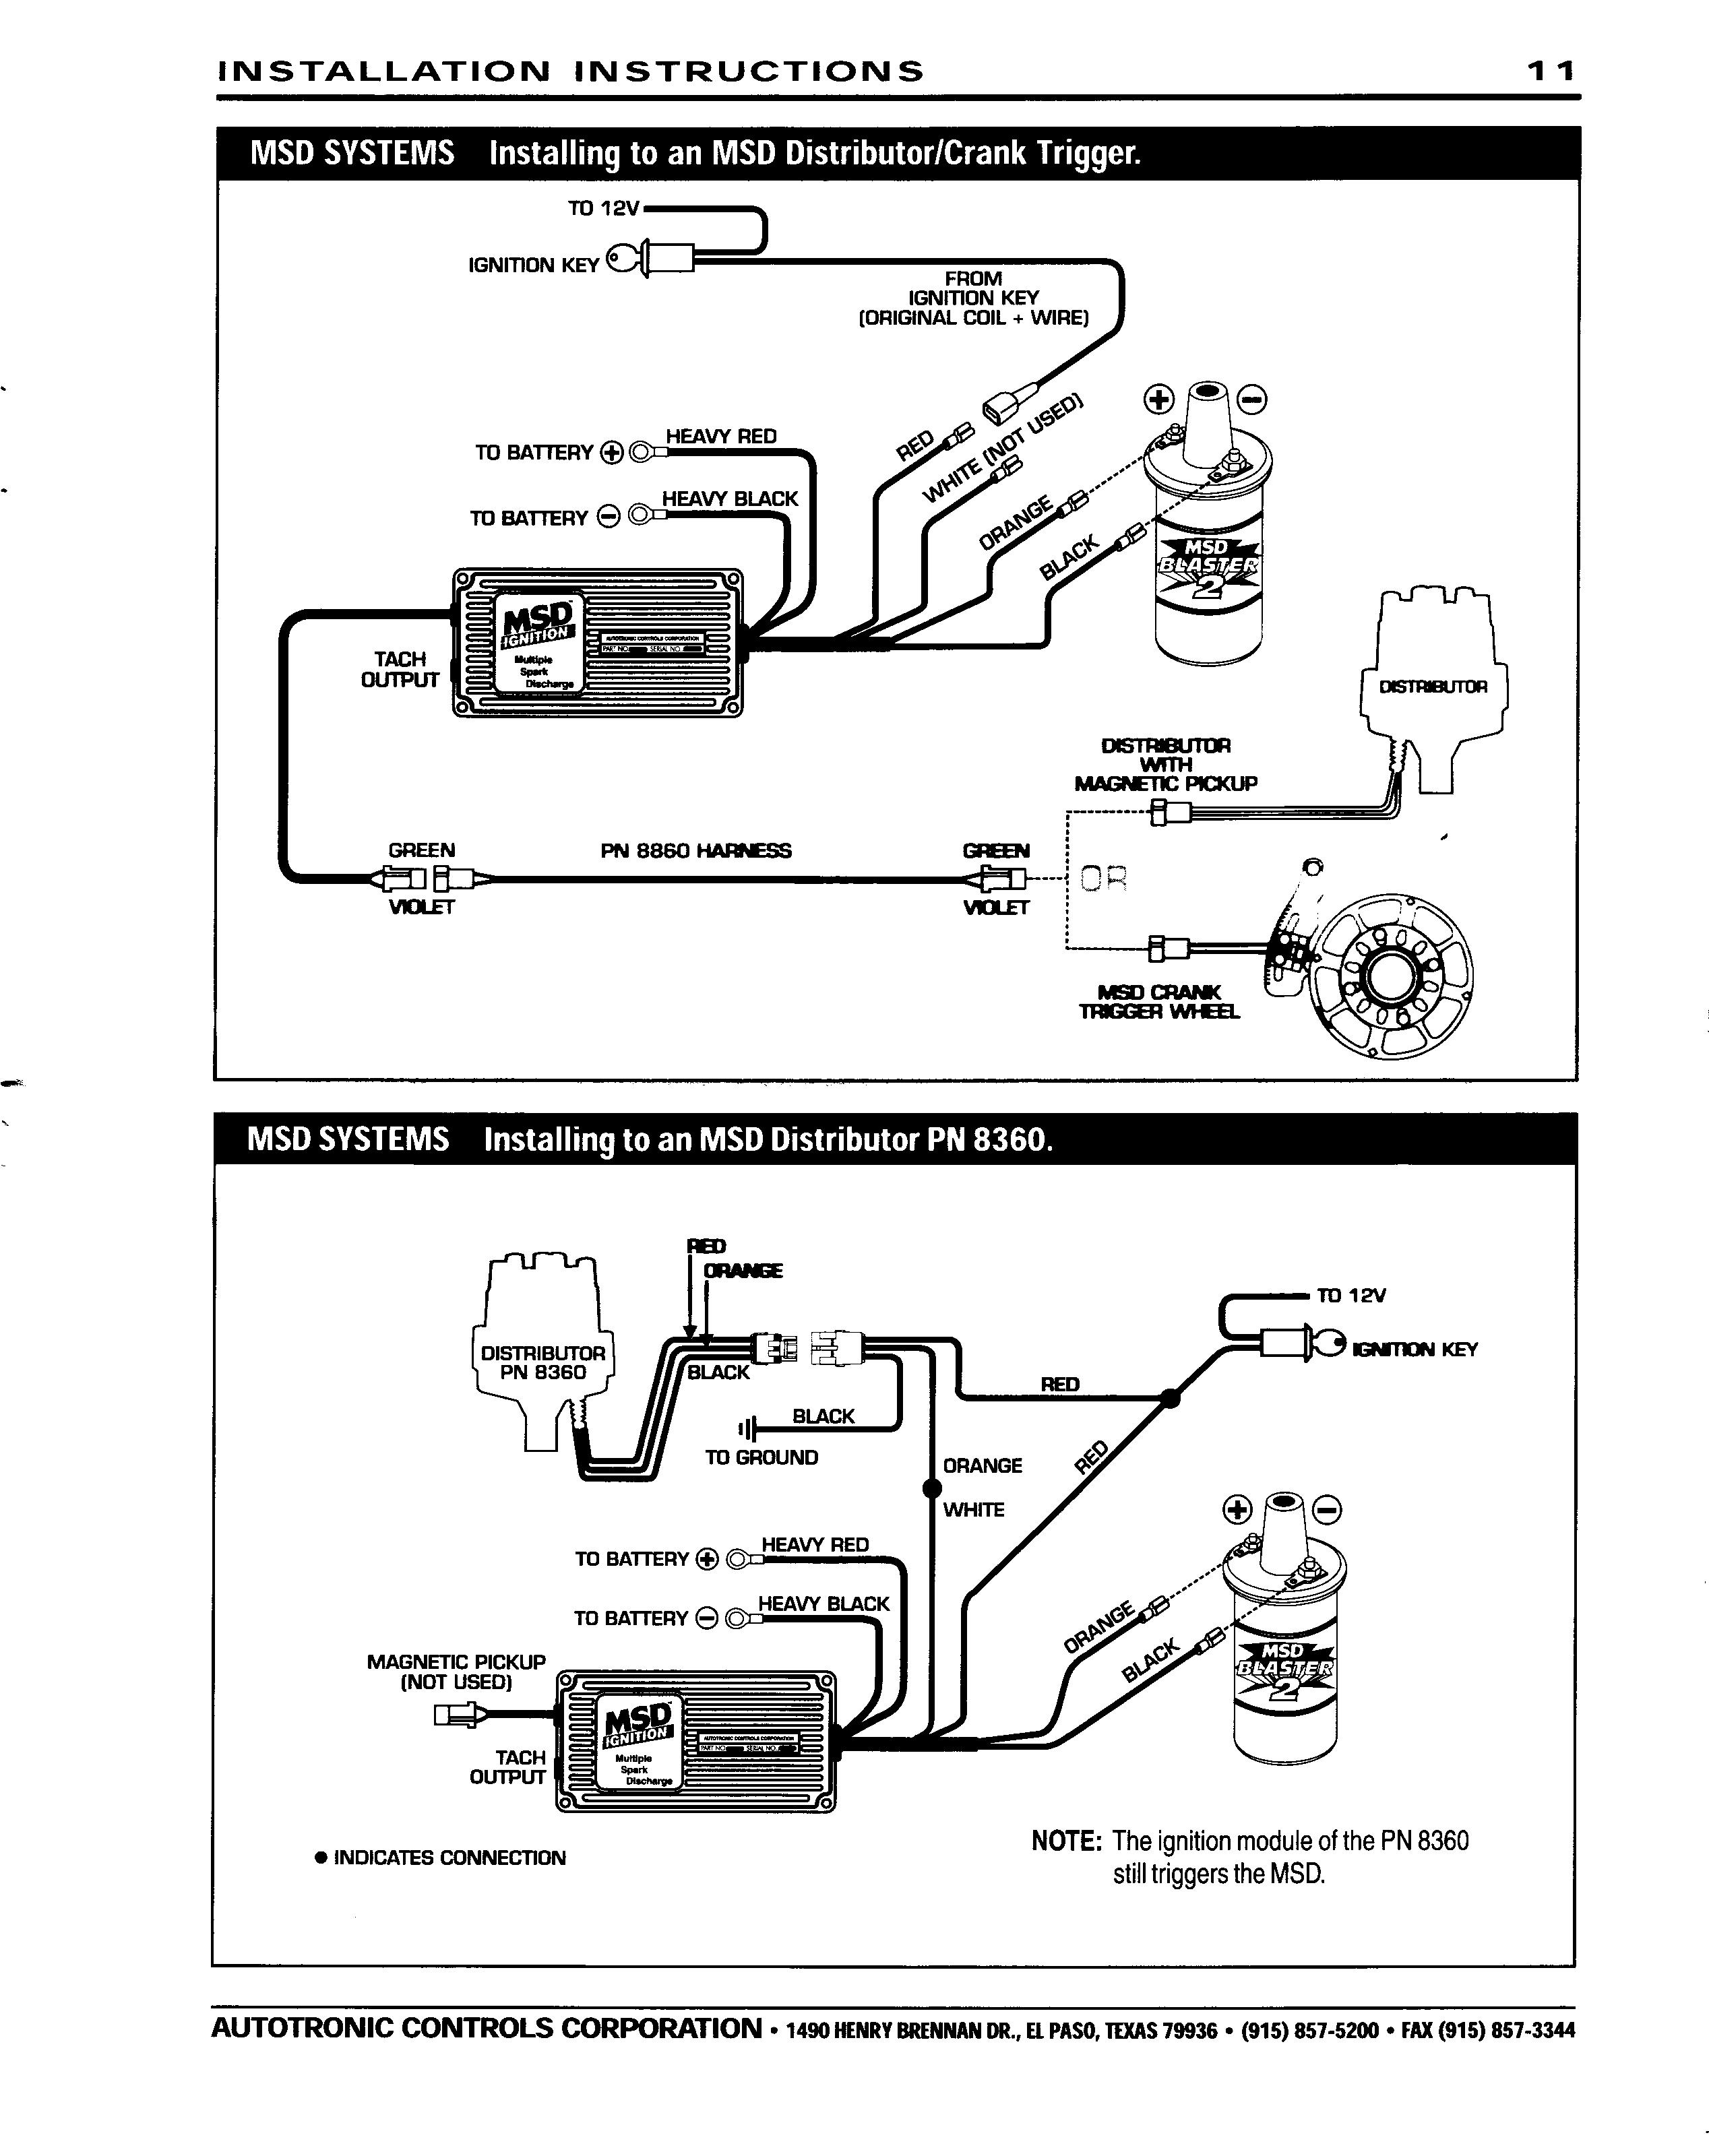 msd ignition wiring diagram dual - wiring diagram options step-deck -  step-deck.studiopyxis.it  pyxis